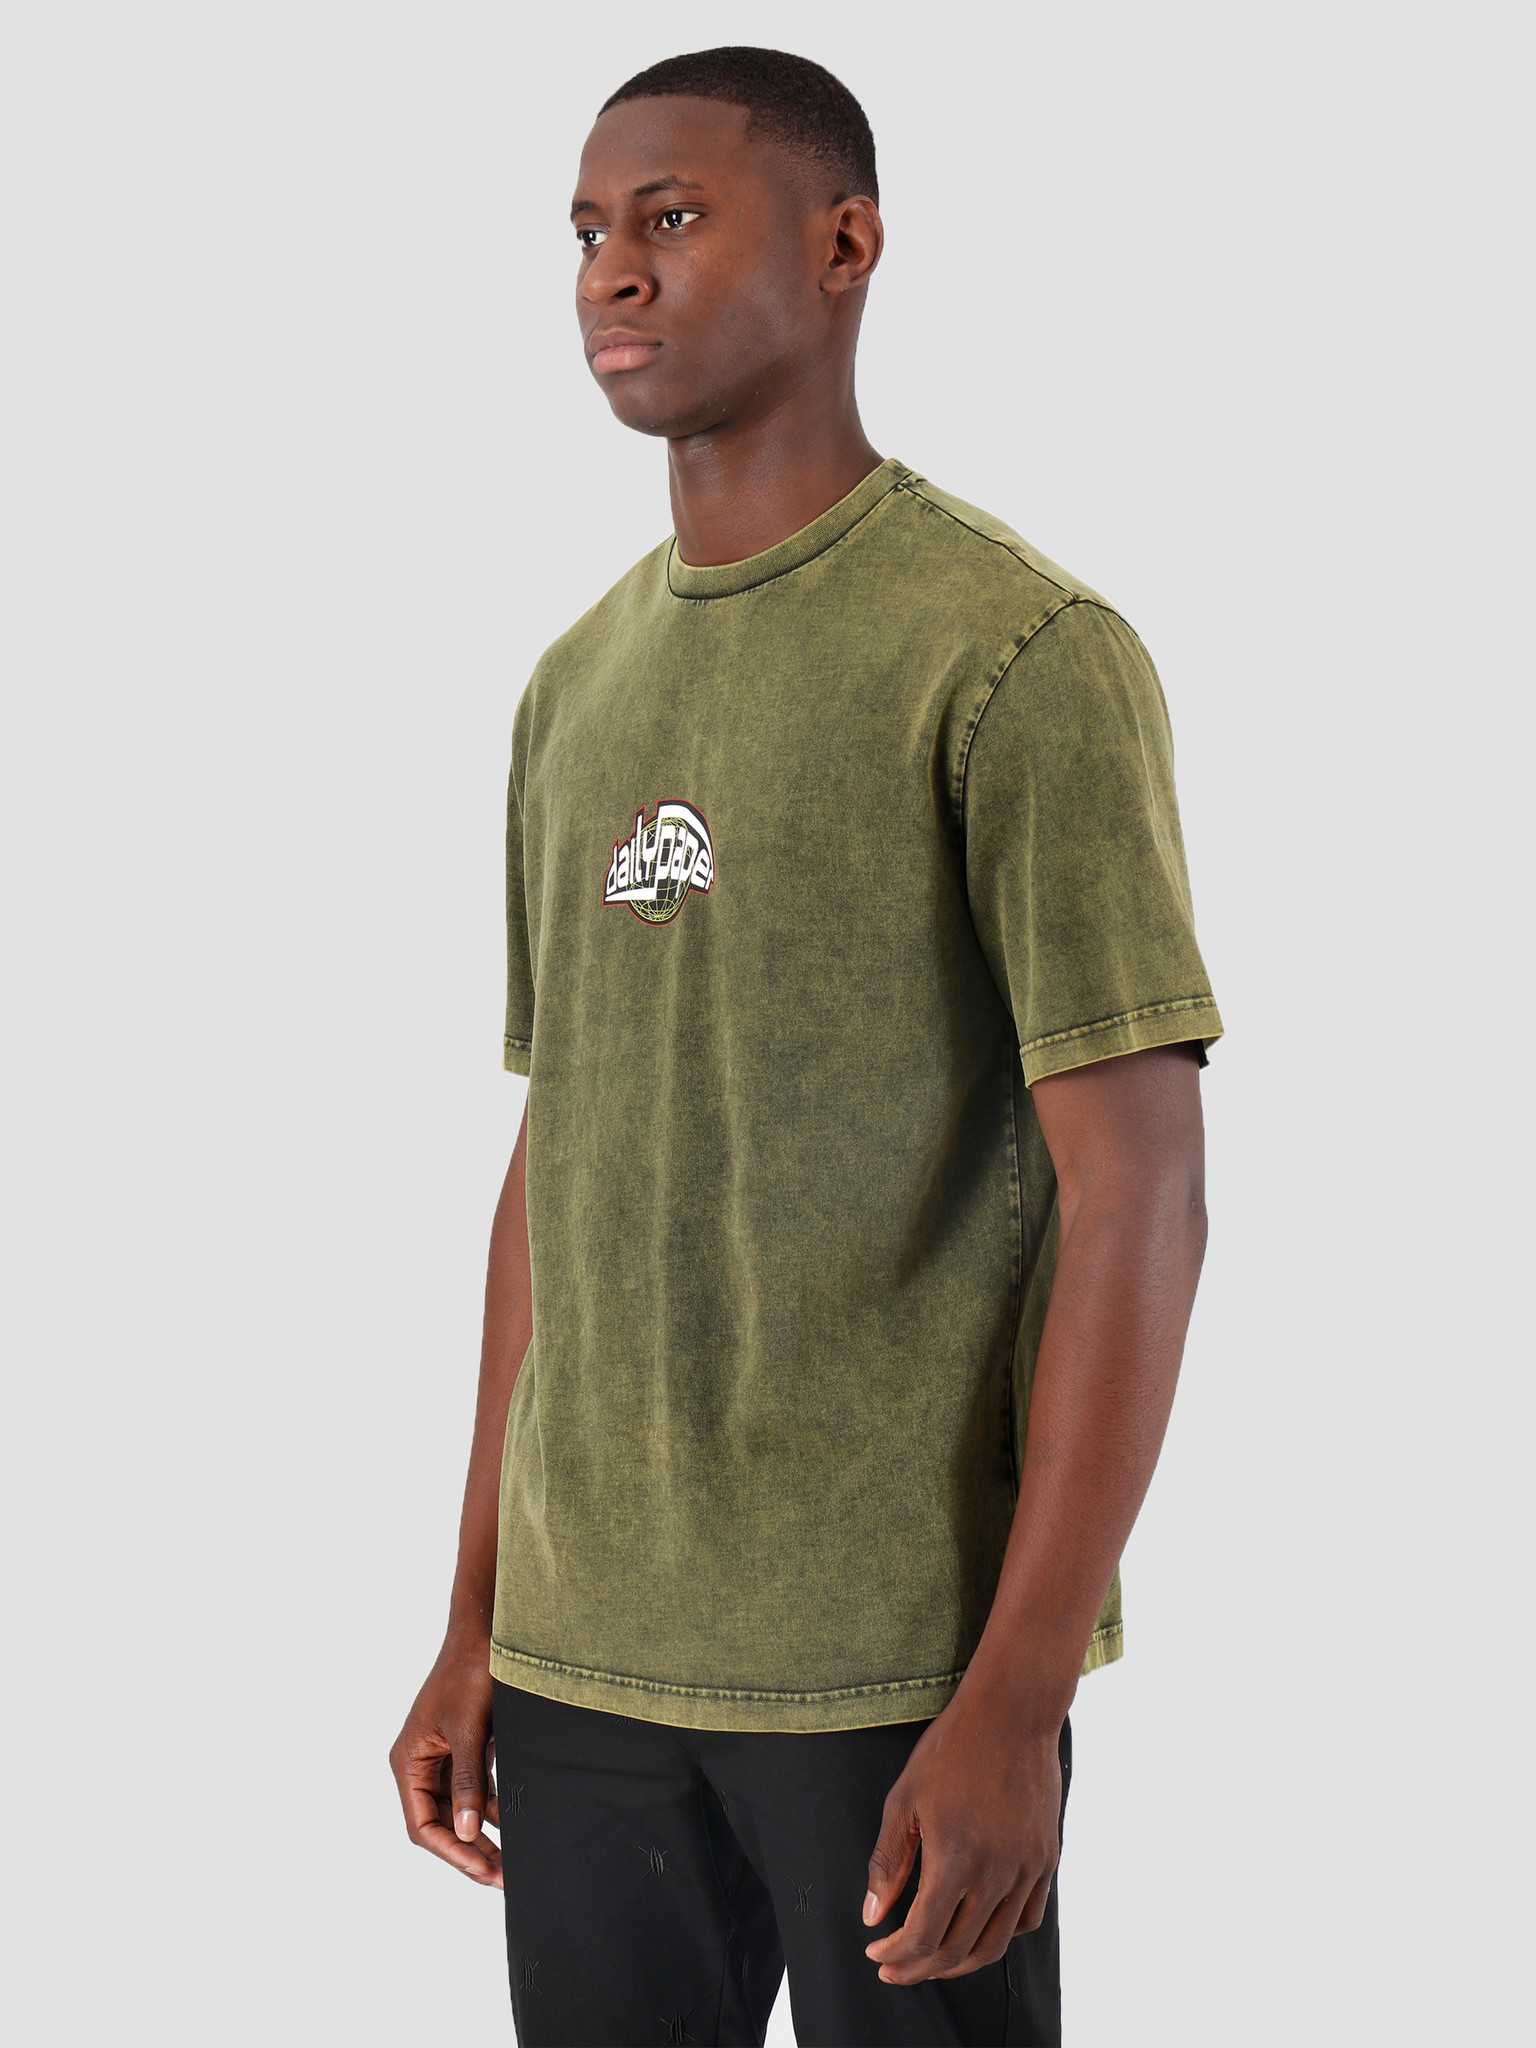 Daily Paper Daily Paper Gusul T-Shirt Acid Macaw Green 19F1TS27-02